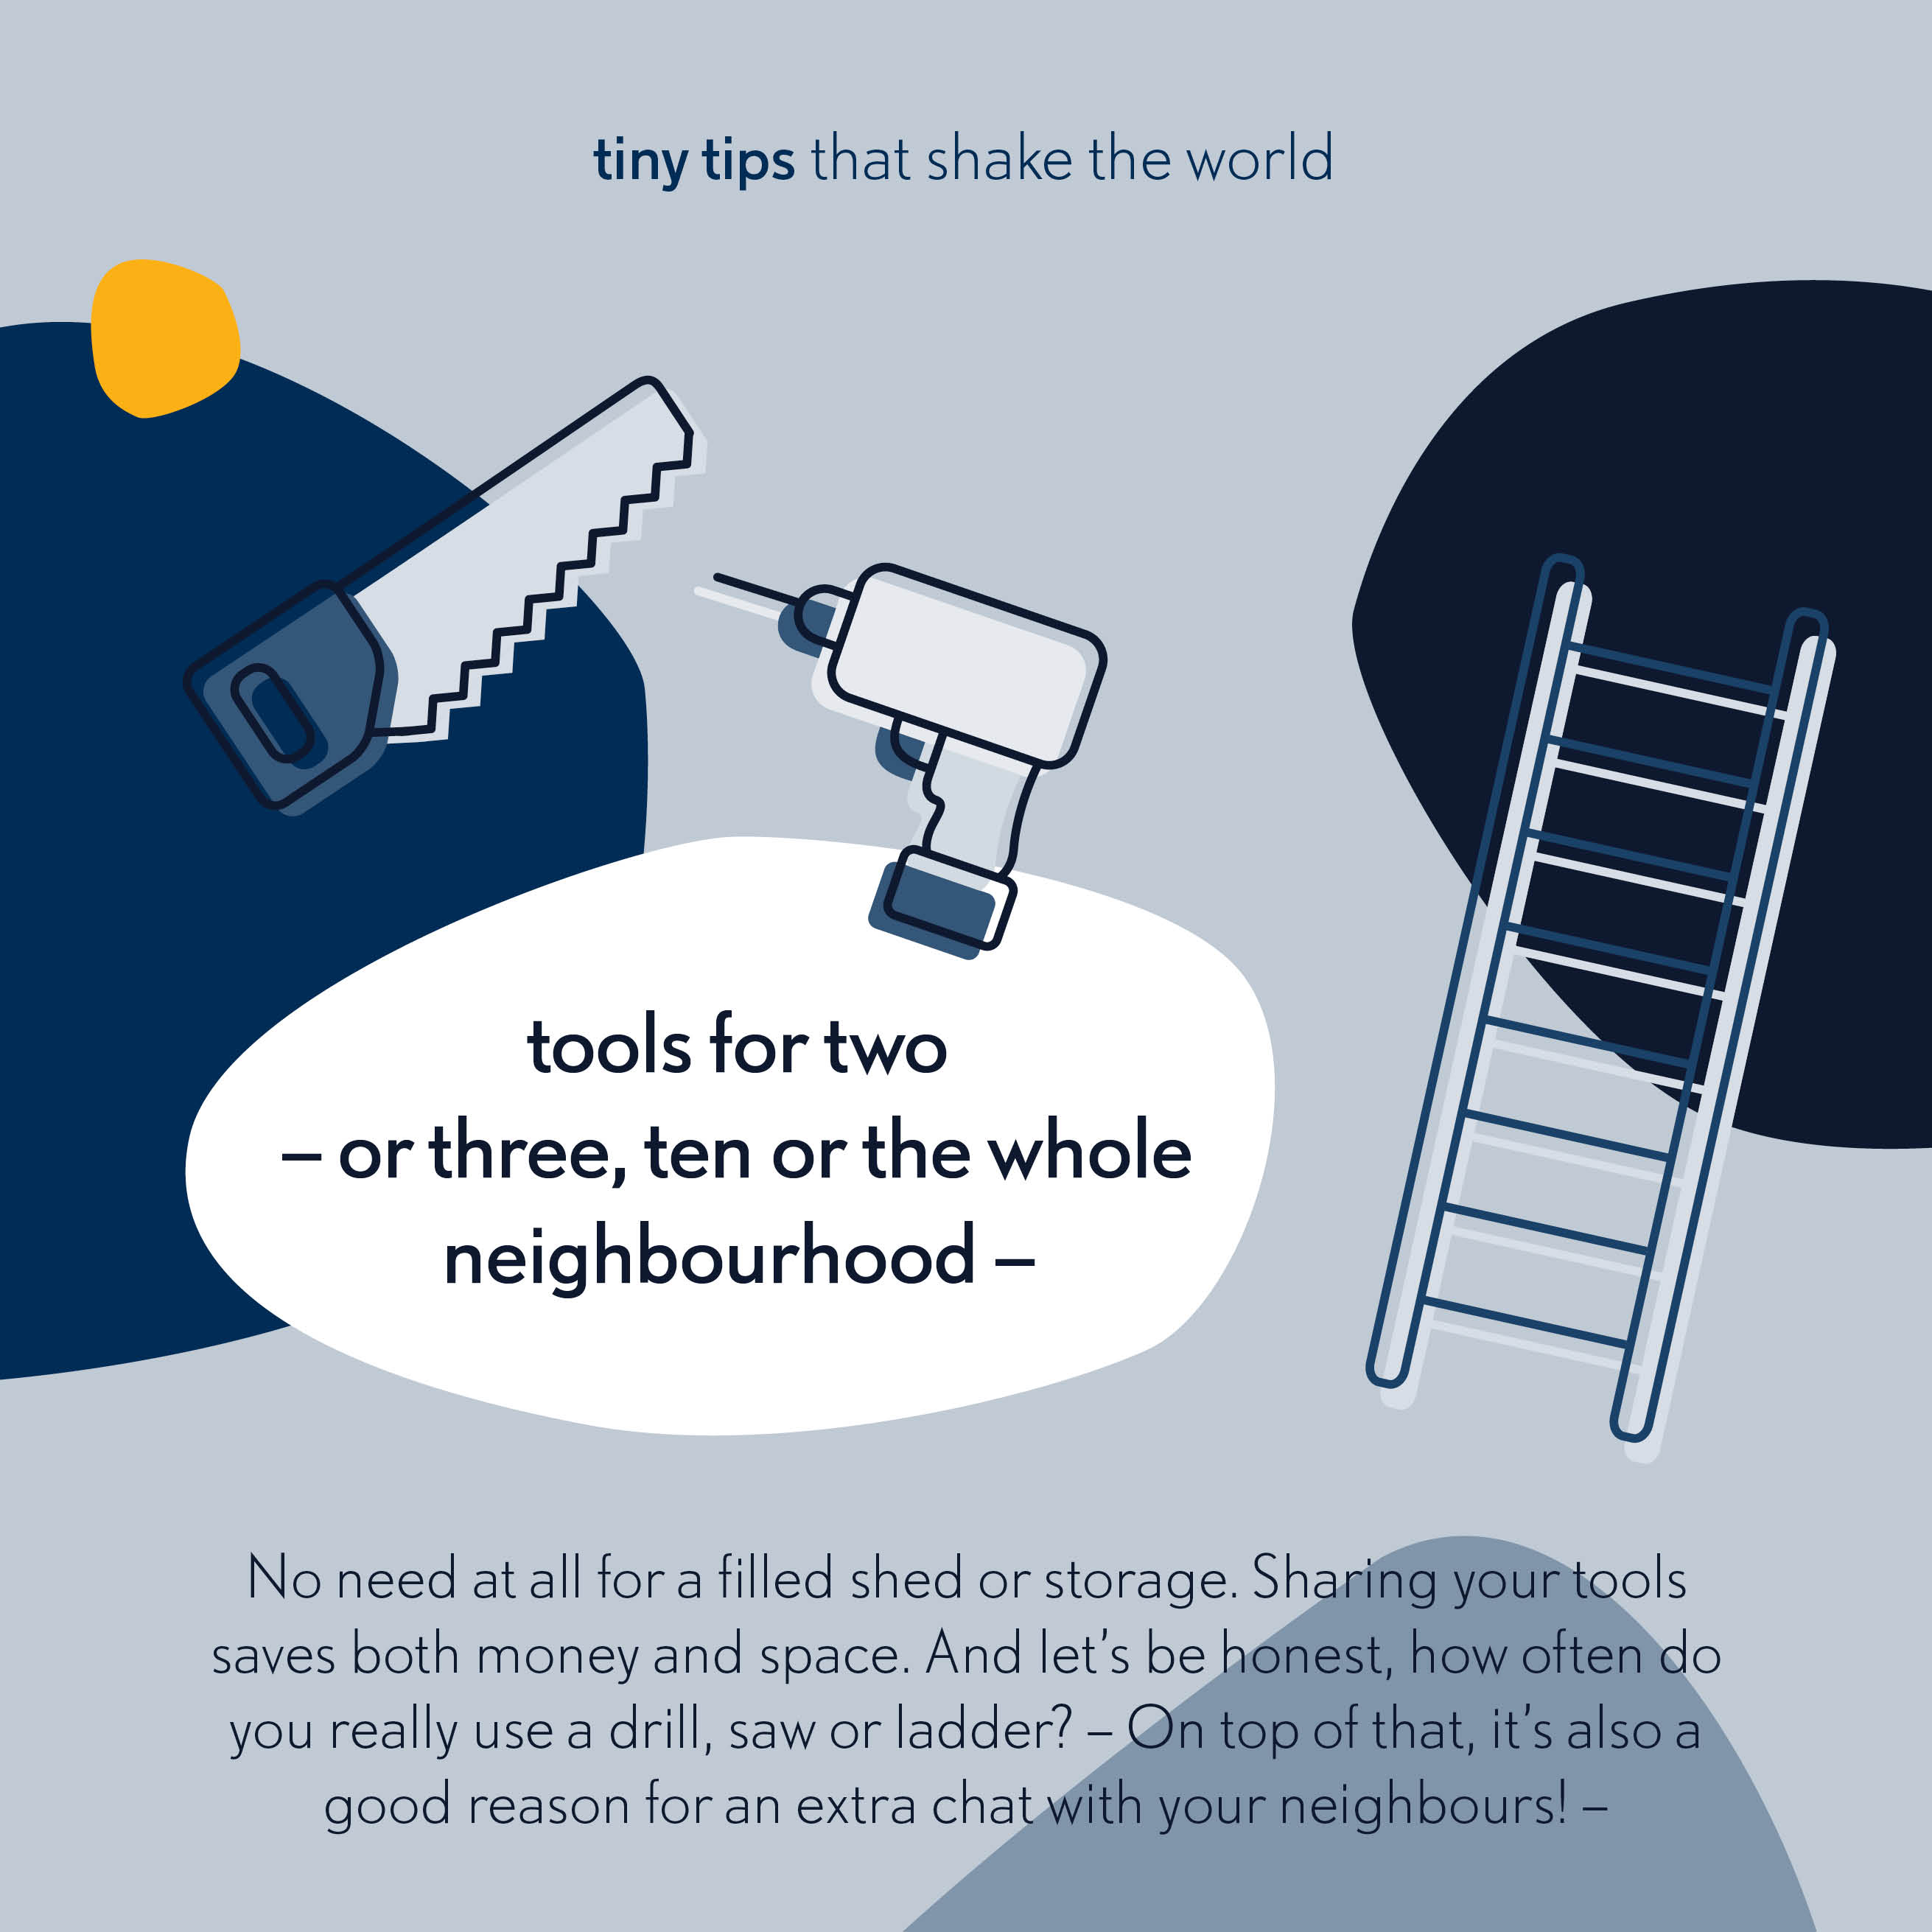 Tools for two - or three, then or the whole neighbourhood - Tiny tips that shake the world